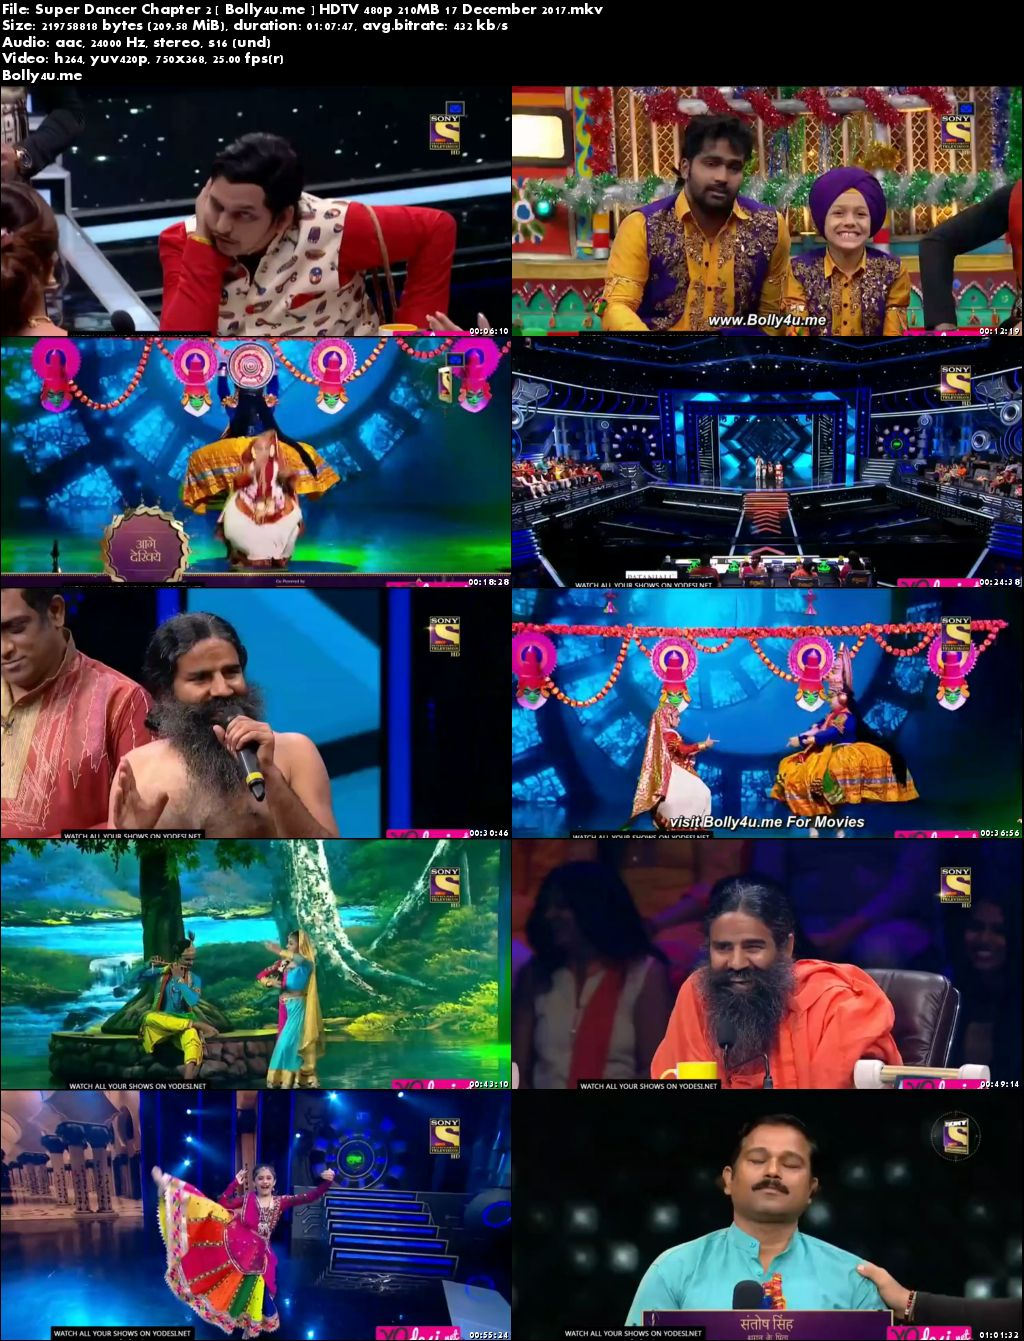 Super Dancer Chapter 2 HDTV 480p 200MB 17 Dec 2017 Download